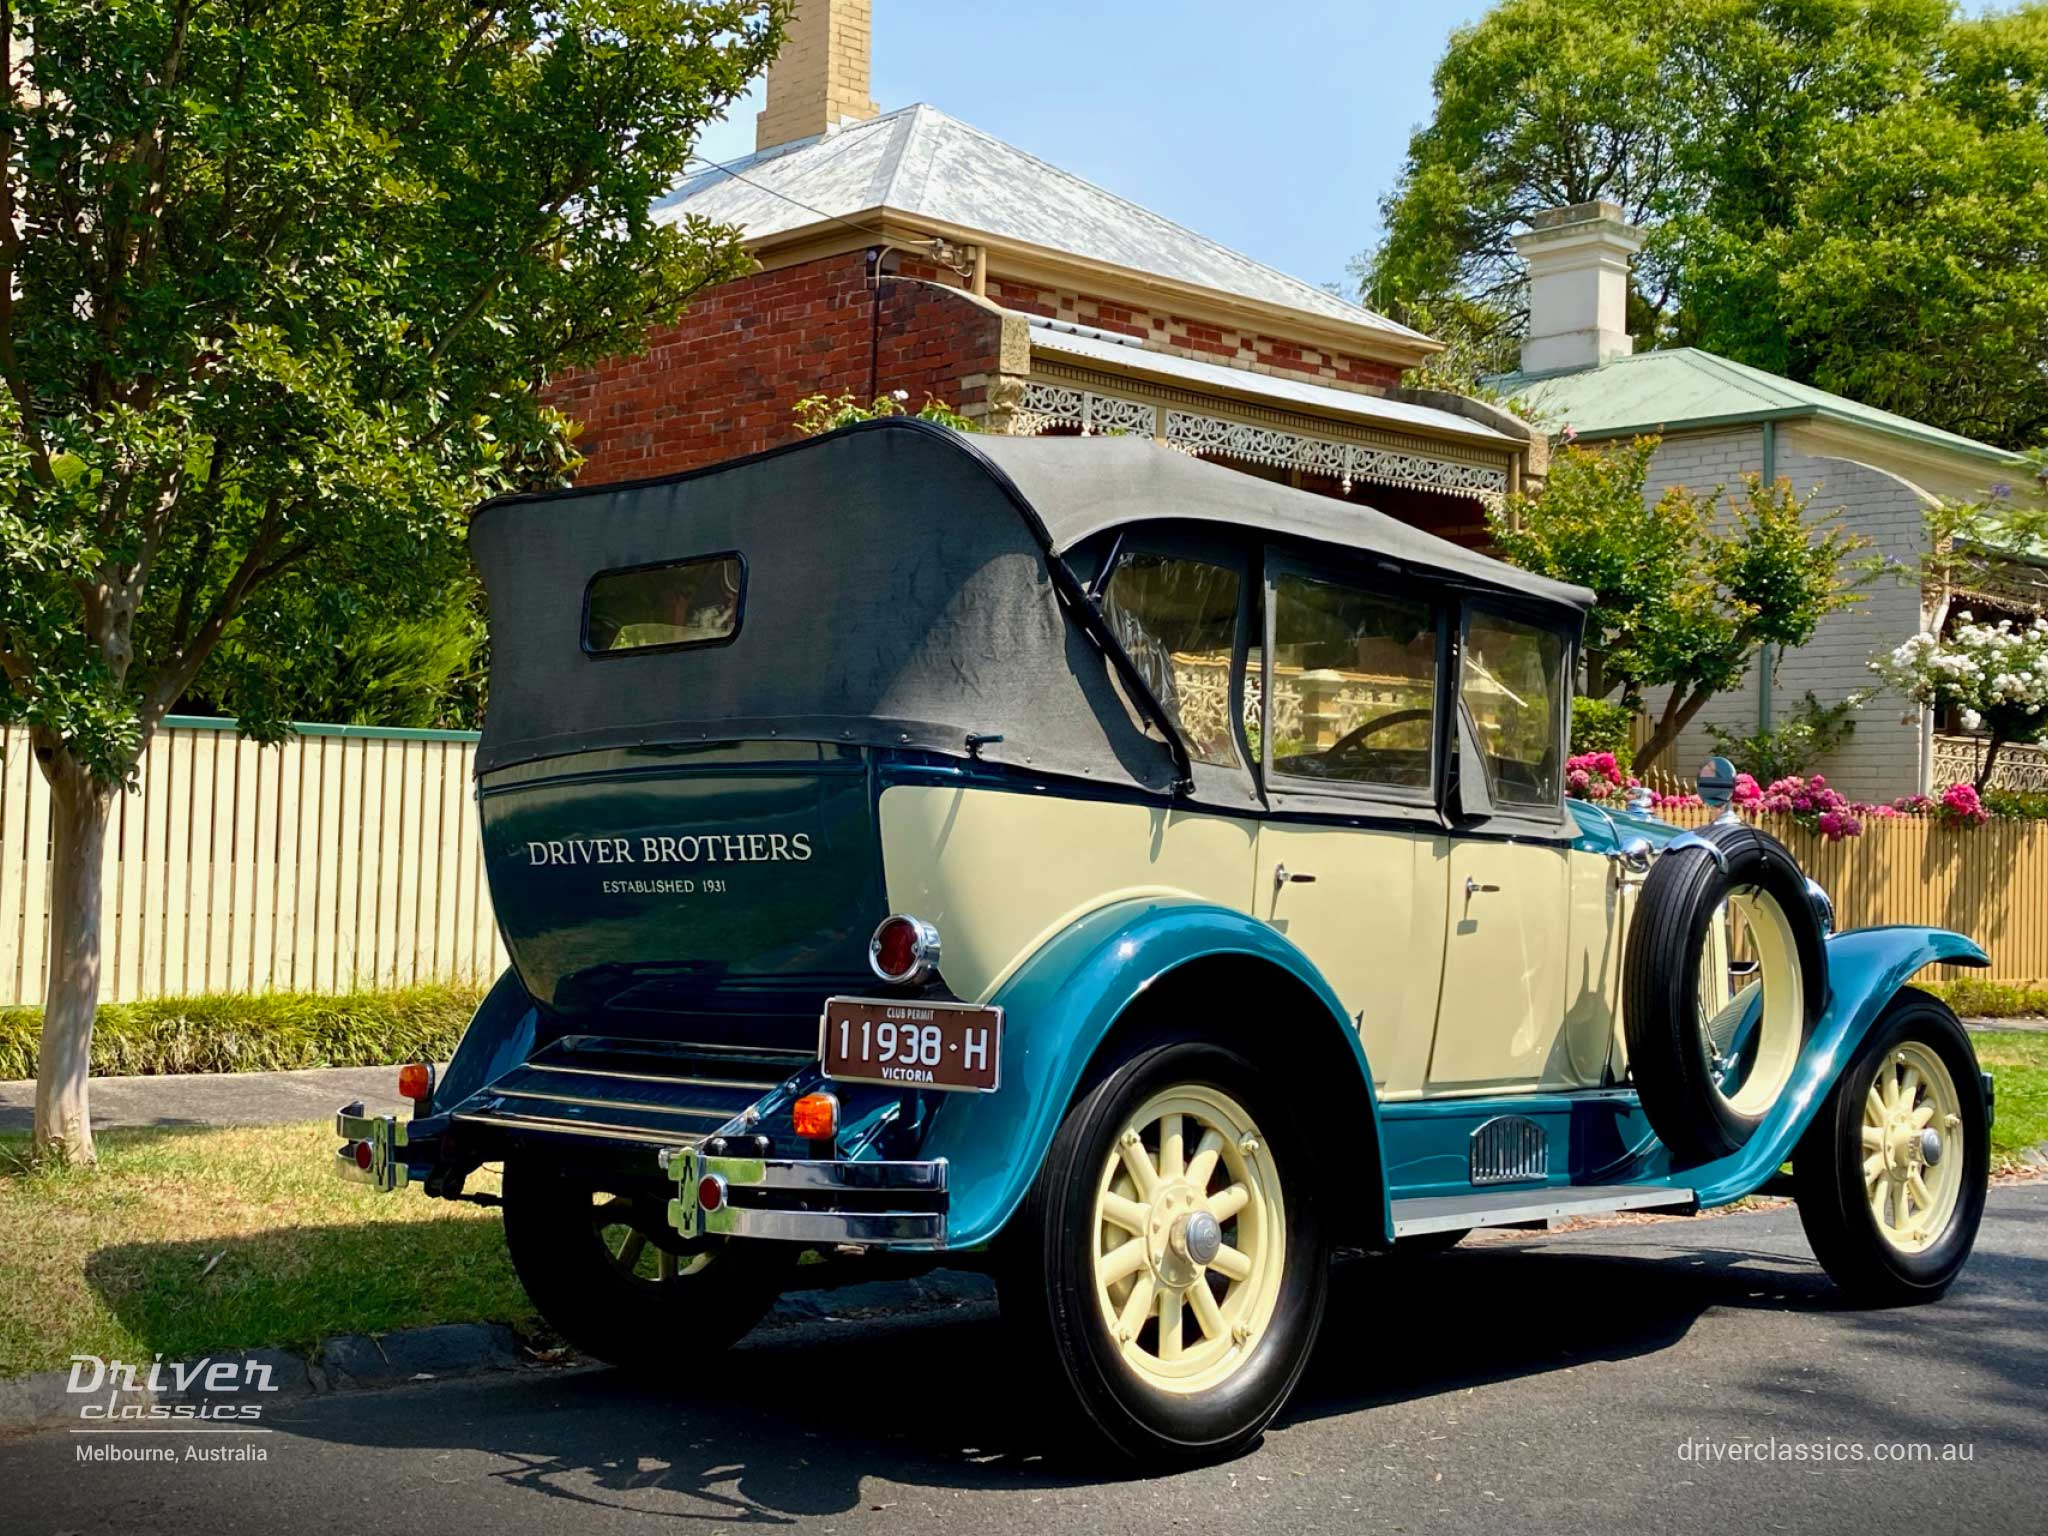 1929 Pontiac 29-6 car, back and side, Camberwell VIC, photo taken December 2019